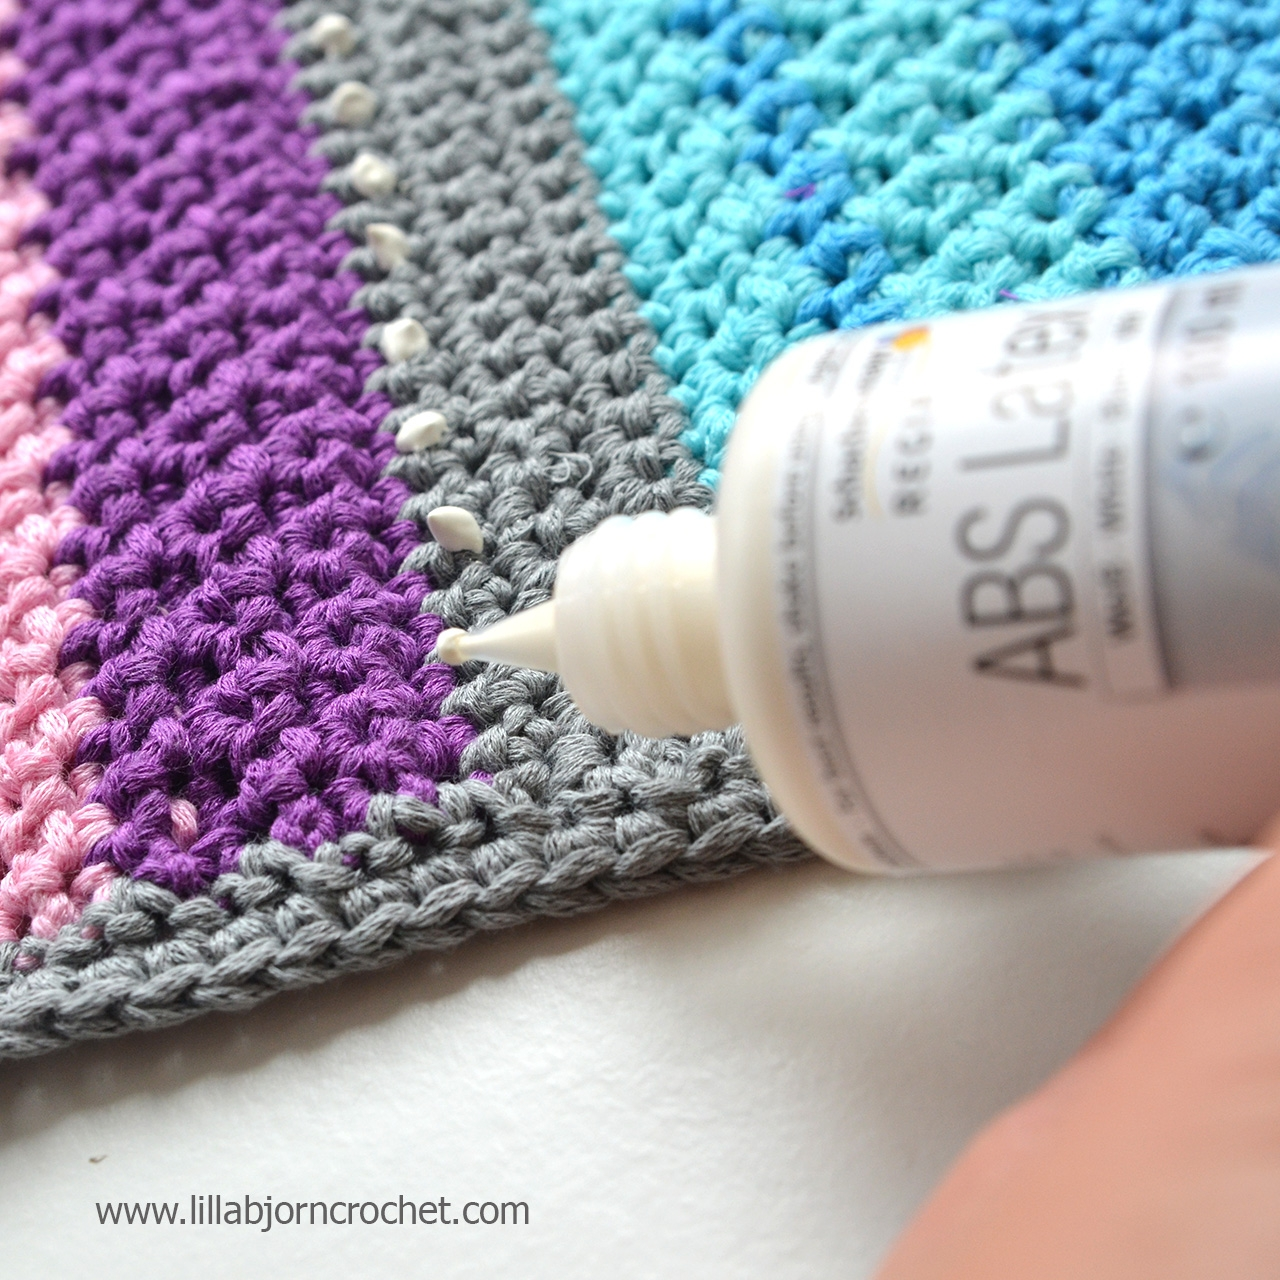 3 Ways To Make Crocheted Rugs Non Slip Lillabjrns Crochet World Pertaining To Non Slip Rugs (Image 1 of 15)